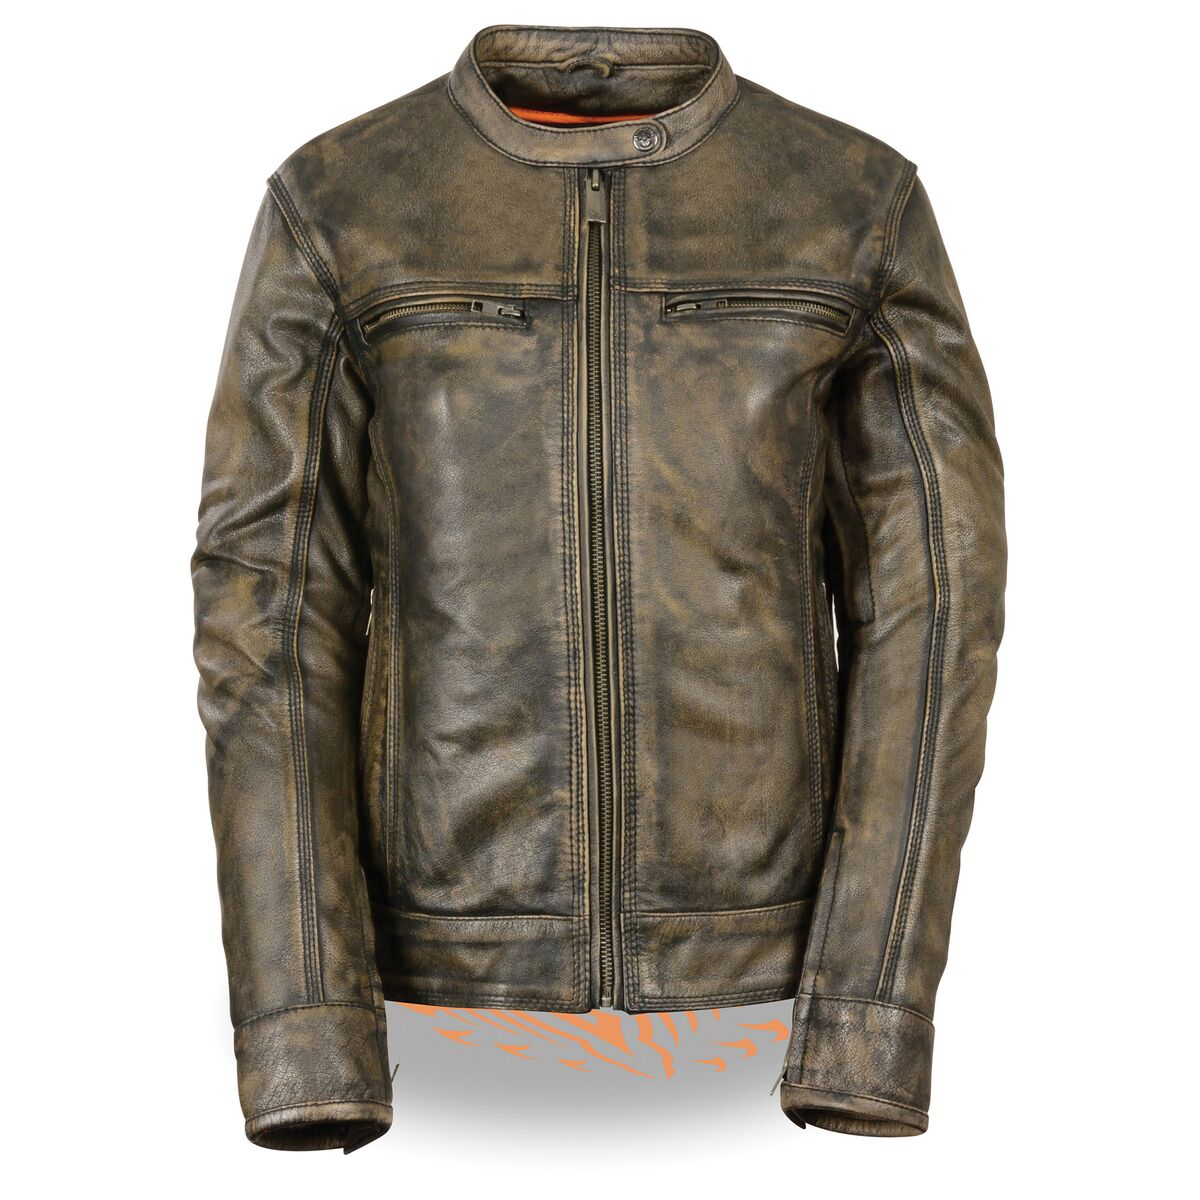 Women's Triple Stitch Distressed Brown Scooter Jacket with Venting